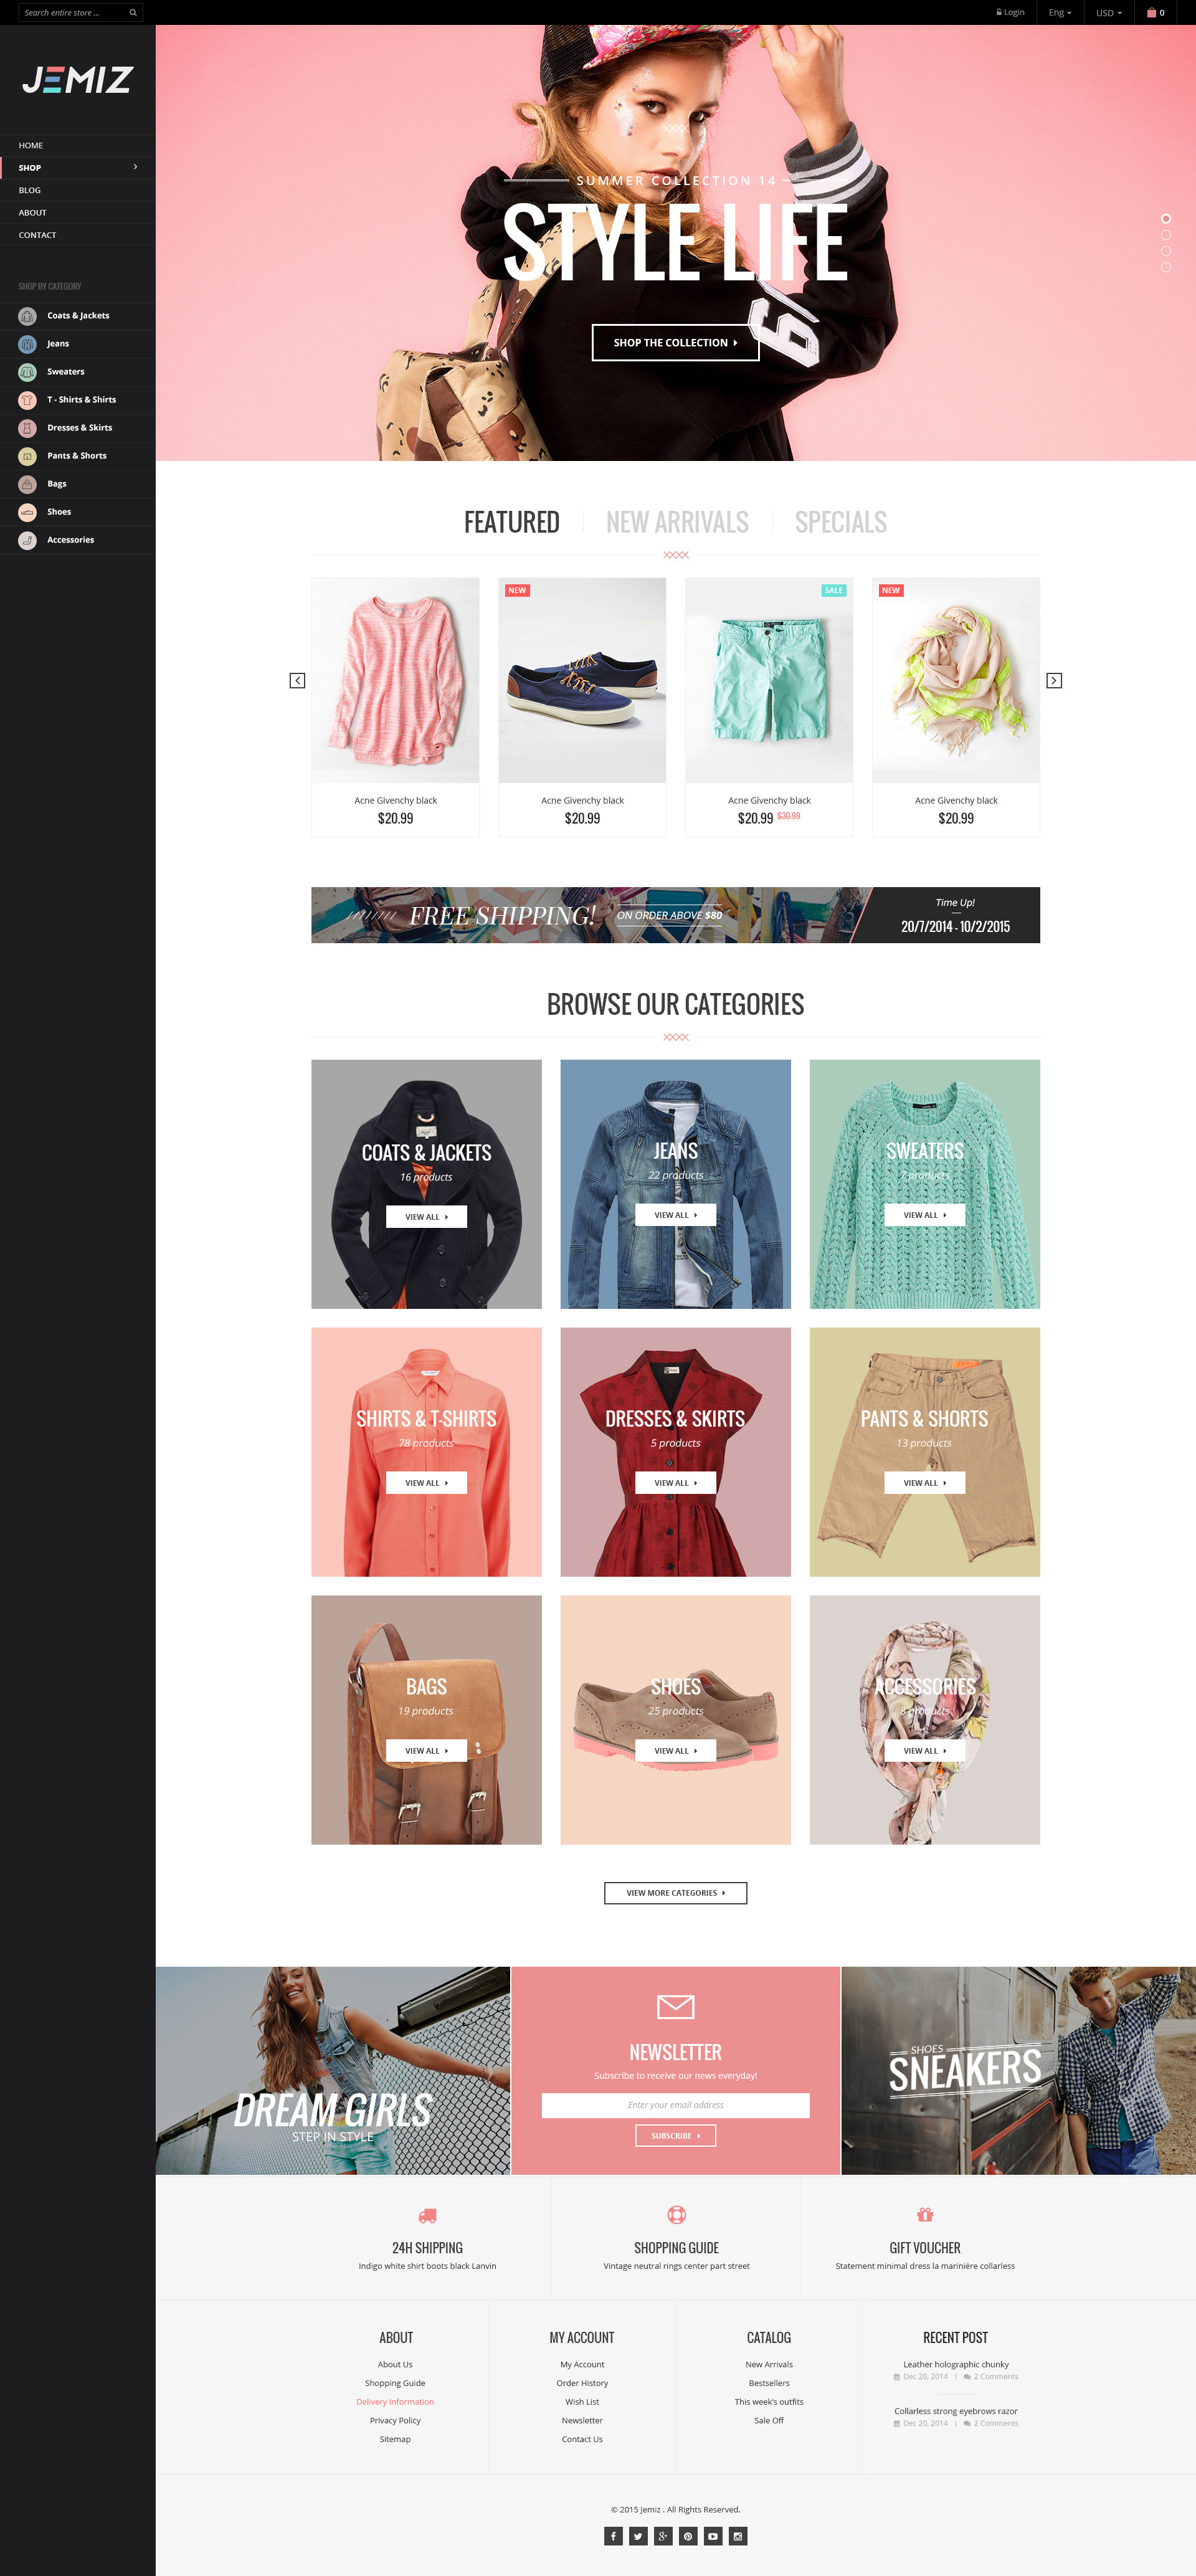 Kids Fashion Store Responsive Shopify Theme Jemiz By Tvlgiao - Shopify store templates